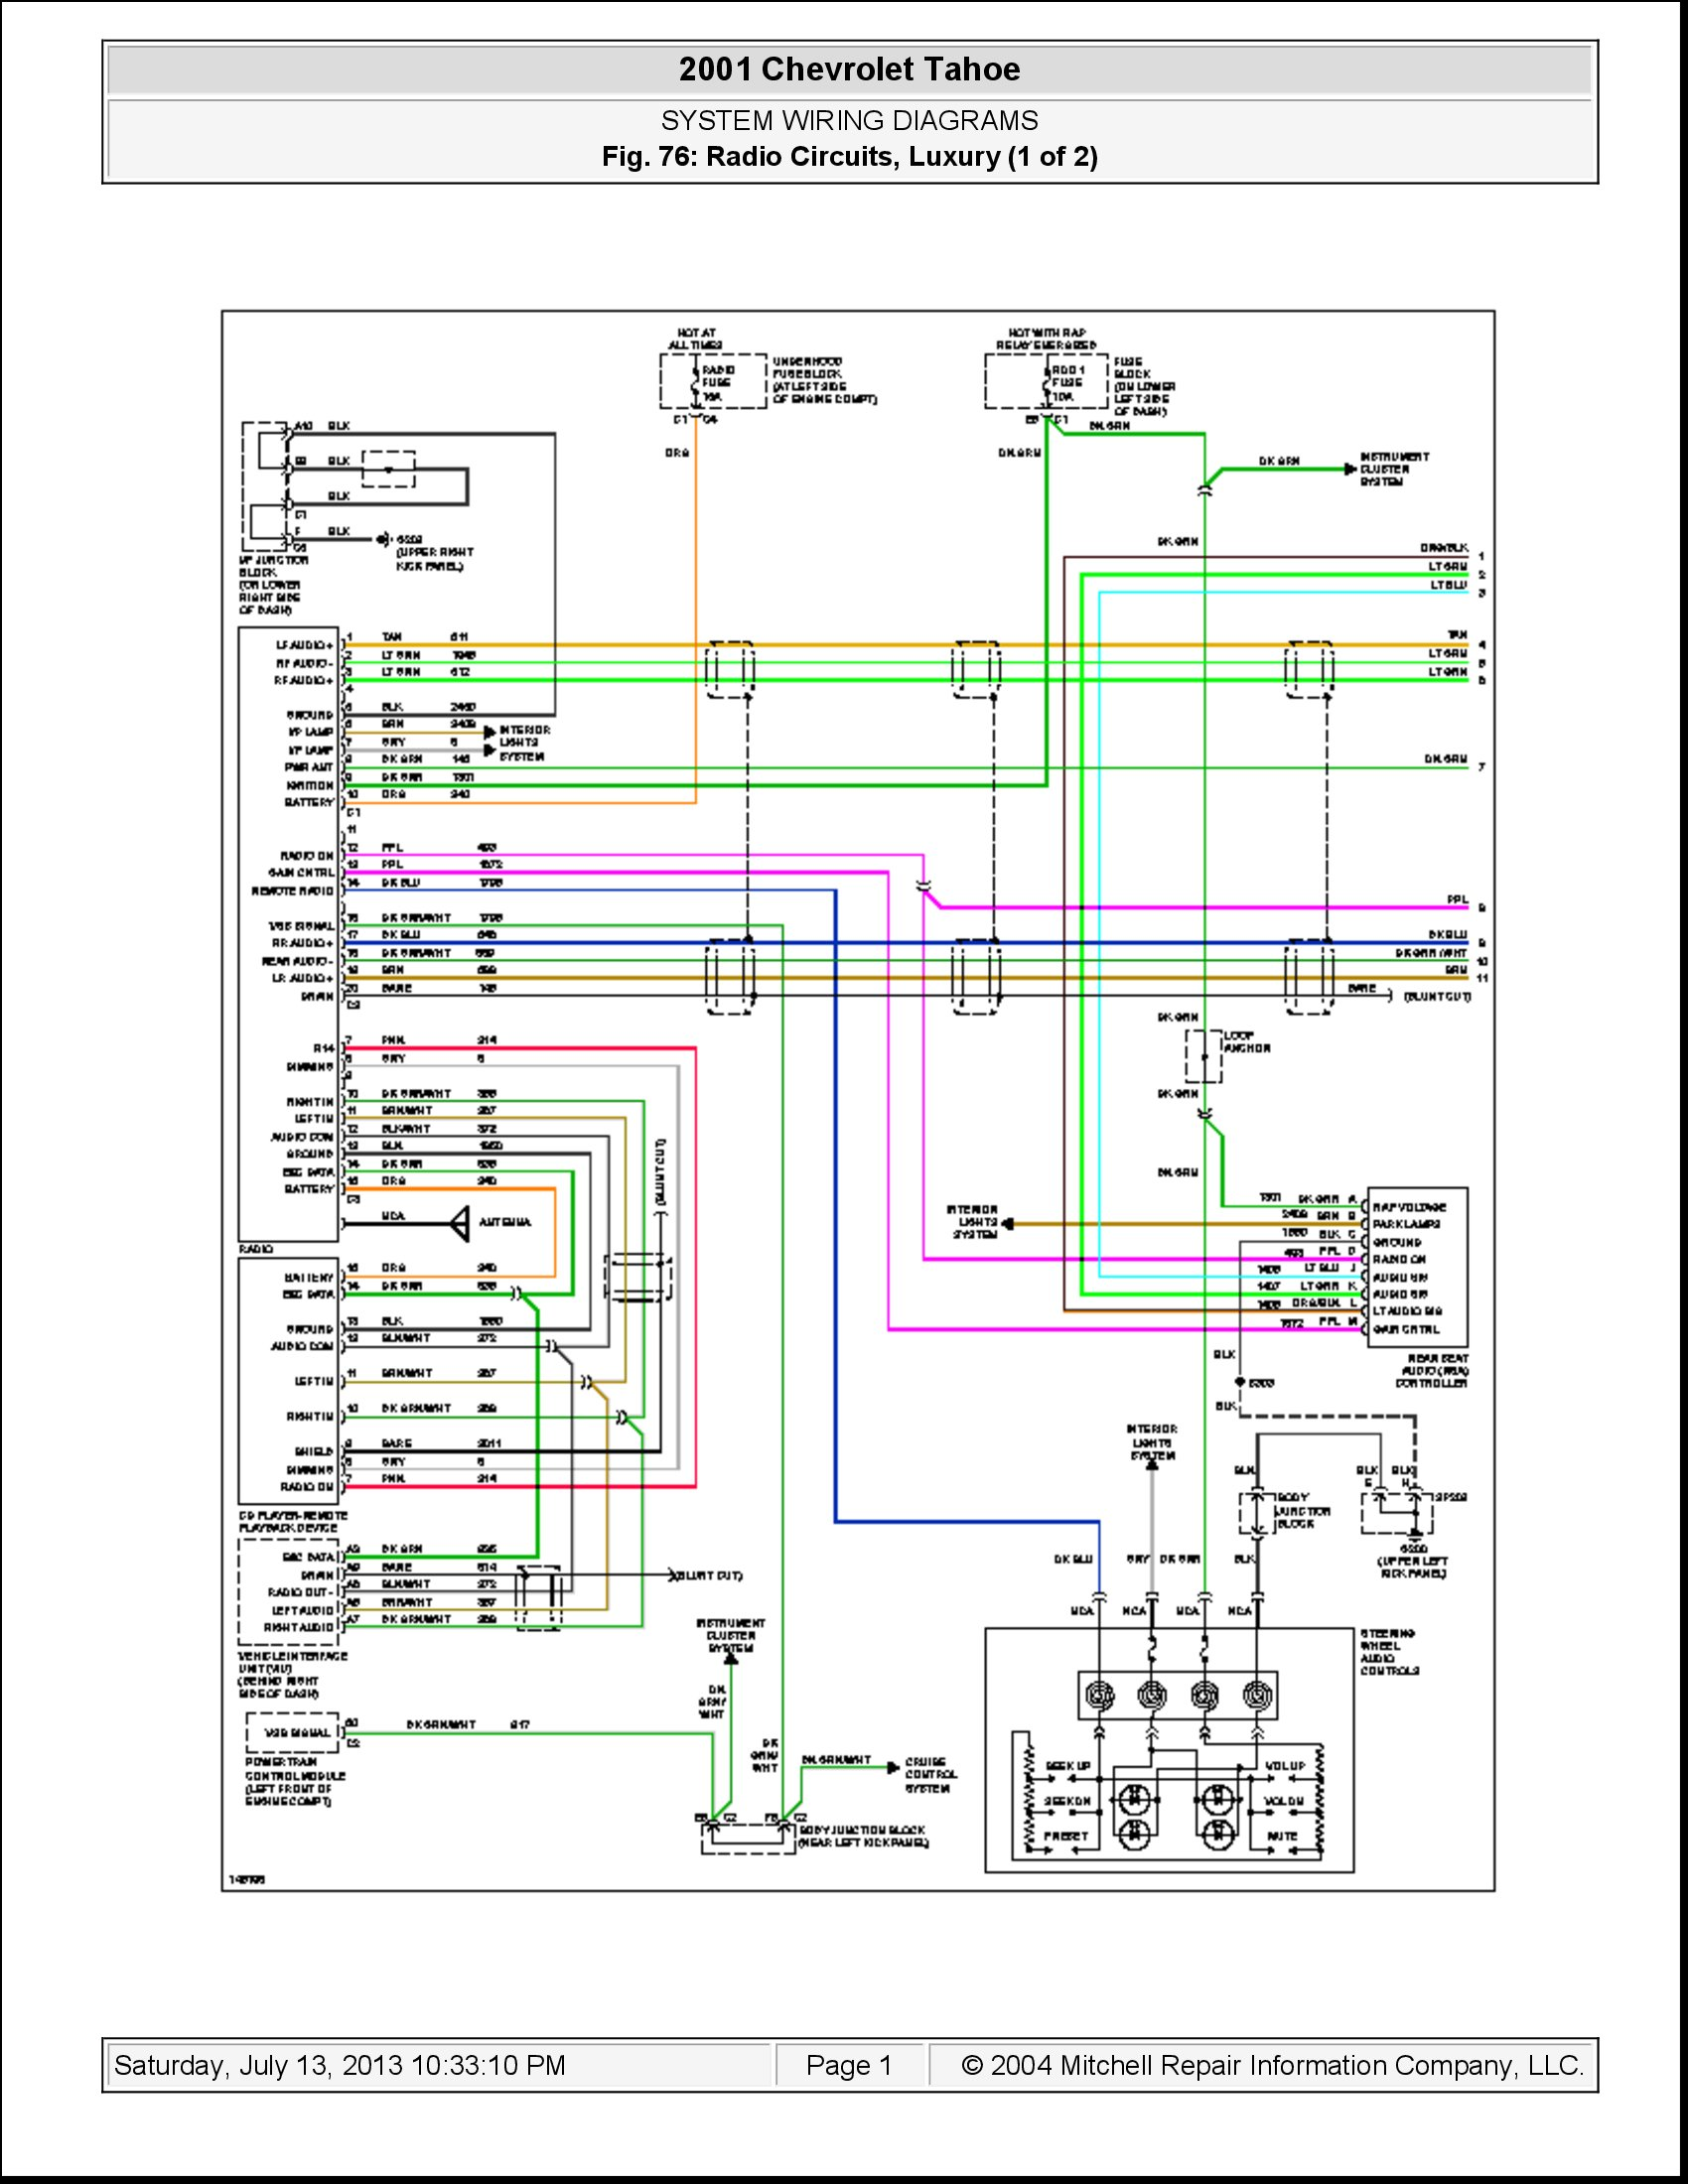 i need a diagram of the stereo wiring in a 2001 chevy tahoe o i need a stereo wiring diagram for stereo wiring diagram for a 2000 ford mustang